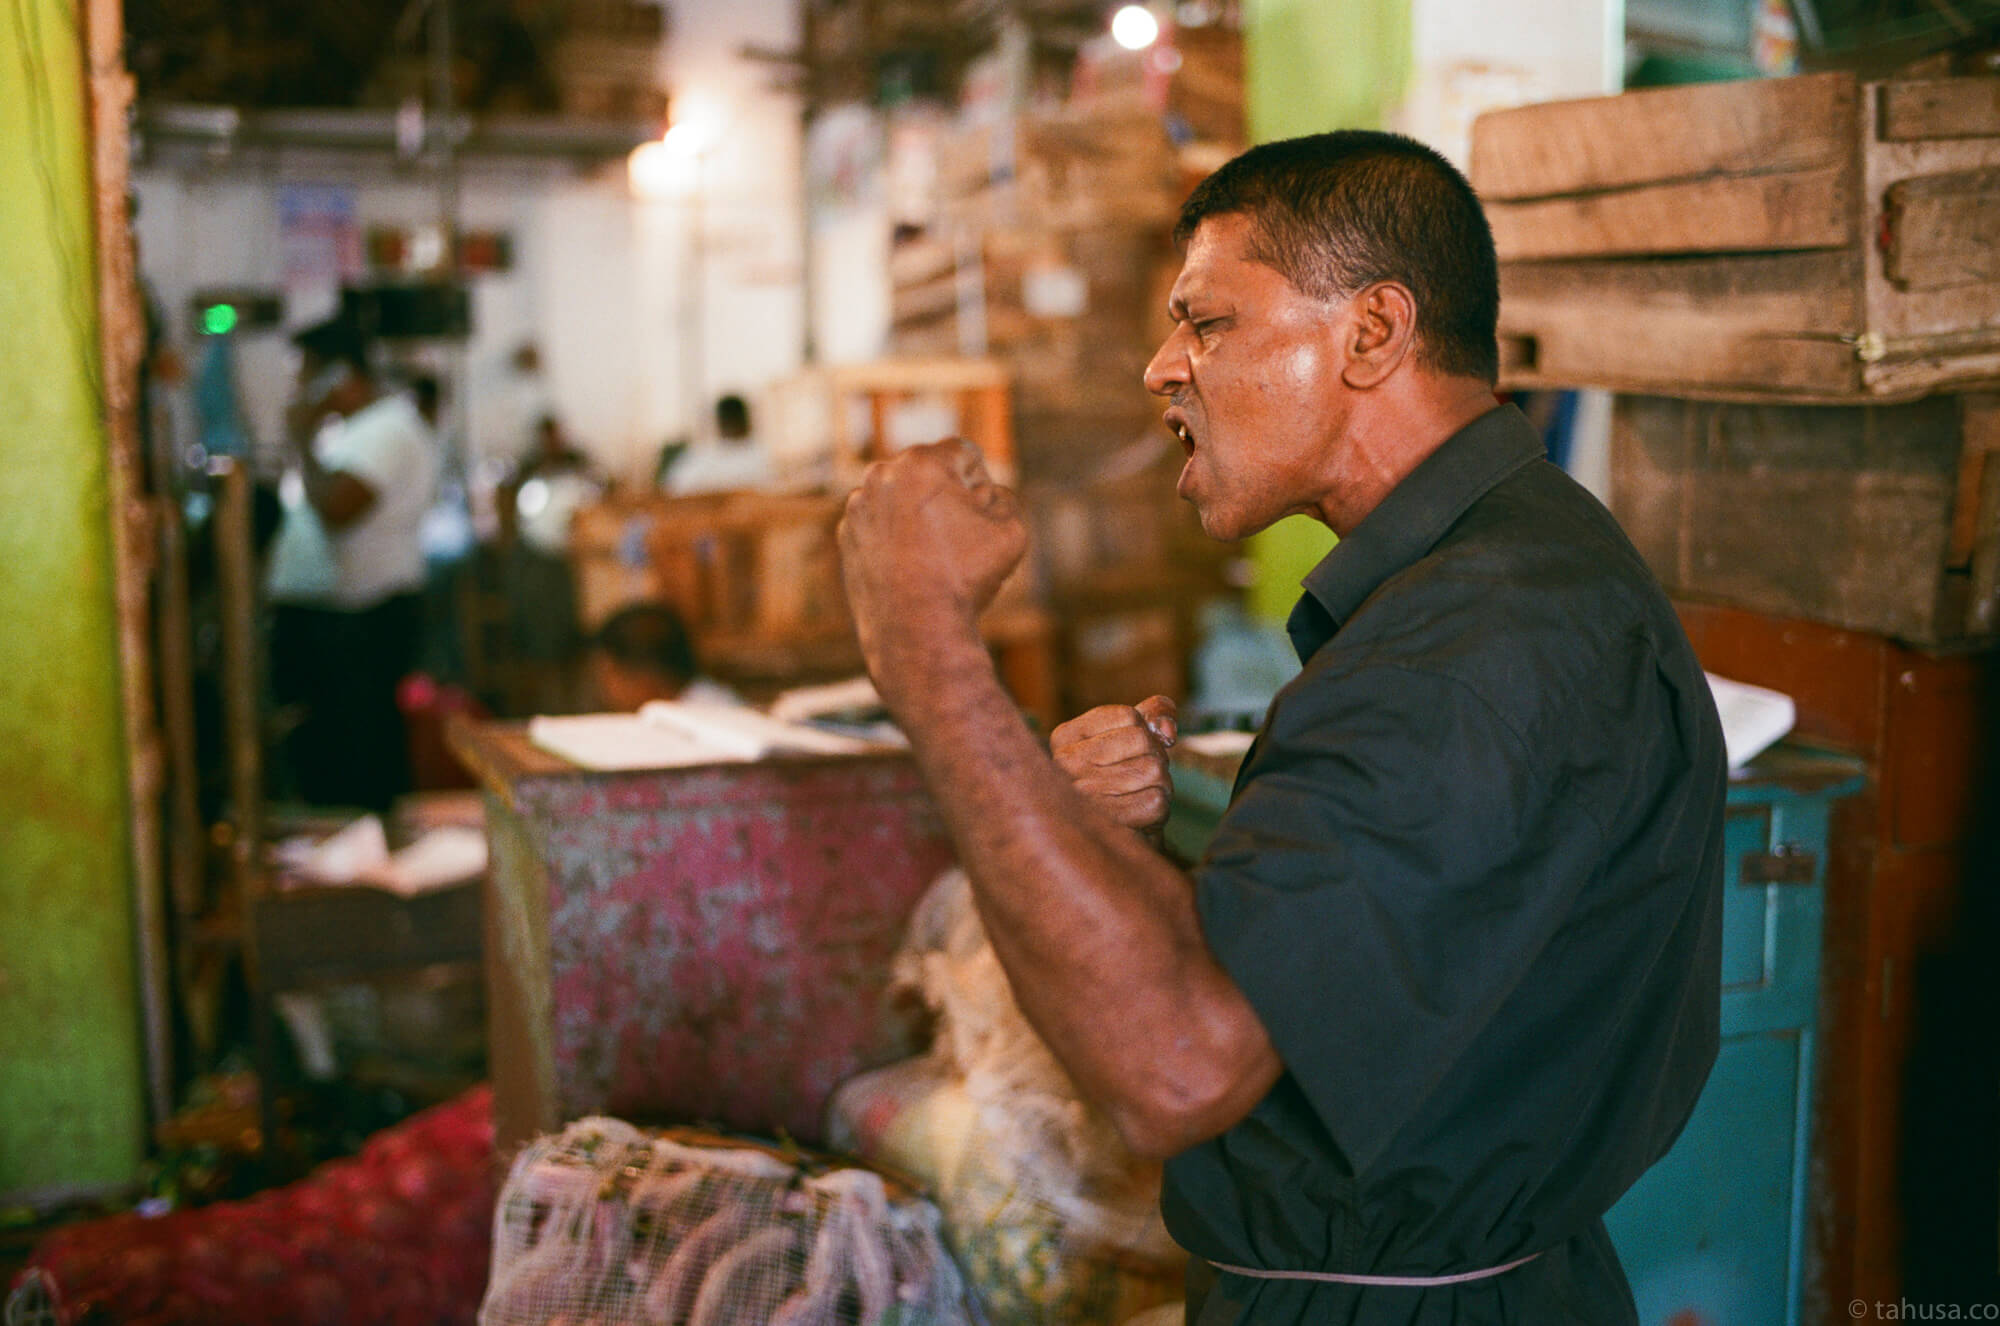 Kung-fu-guy-martial-art-斯里蘭卡-Colombo-pettah-market-manning-sri-lanka-sri-lankan-nuwara-eliya-colombo-using-film-camera-with-analog-fuji-superia-premium-400-iso400-with-leica-summilux-35mm-f1.4-asph-fle